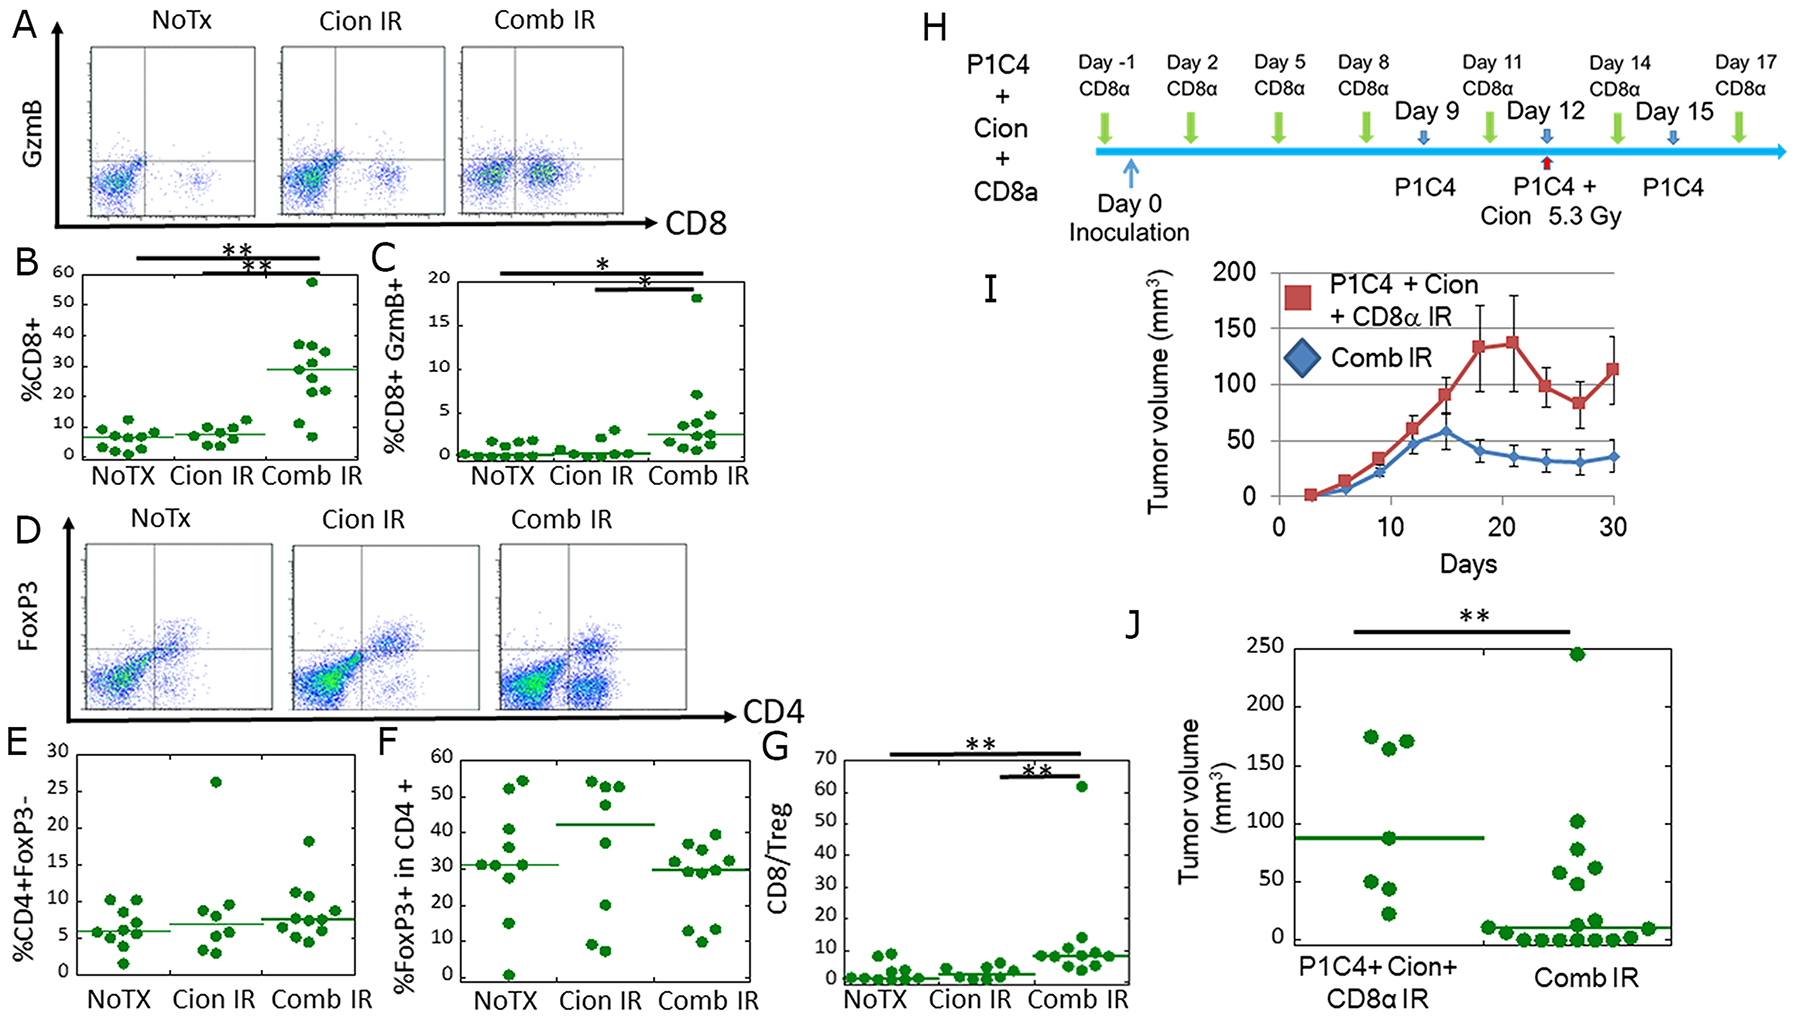 Analysis of CD8+/GzmB+ cells and CD4/Foxp3+ cells in tumor-infiltrating lymphocytes (TILs), and the antitumor immune response at a local site.